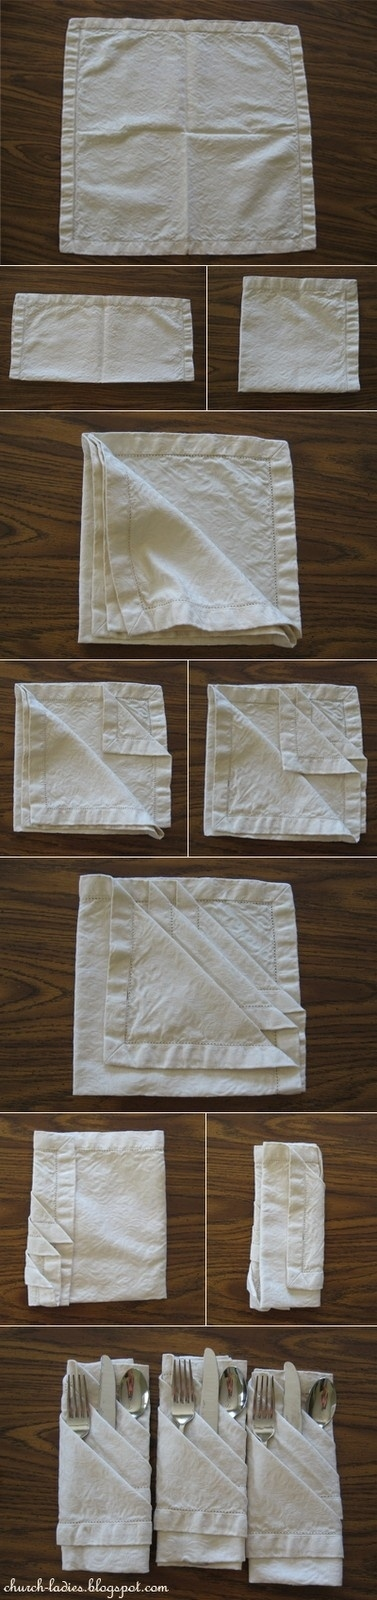 How To Fold A Napkin 1